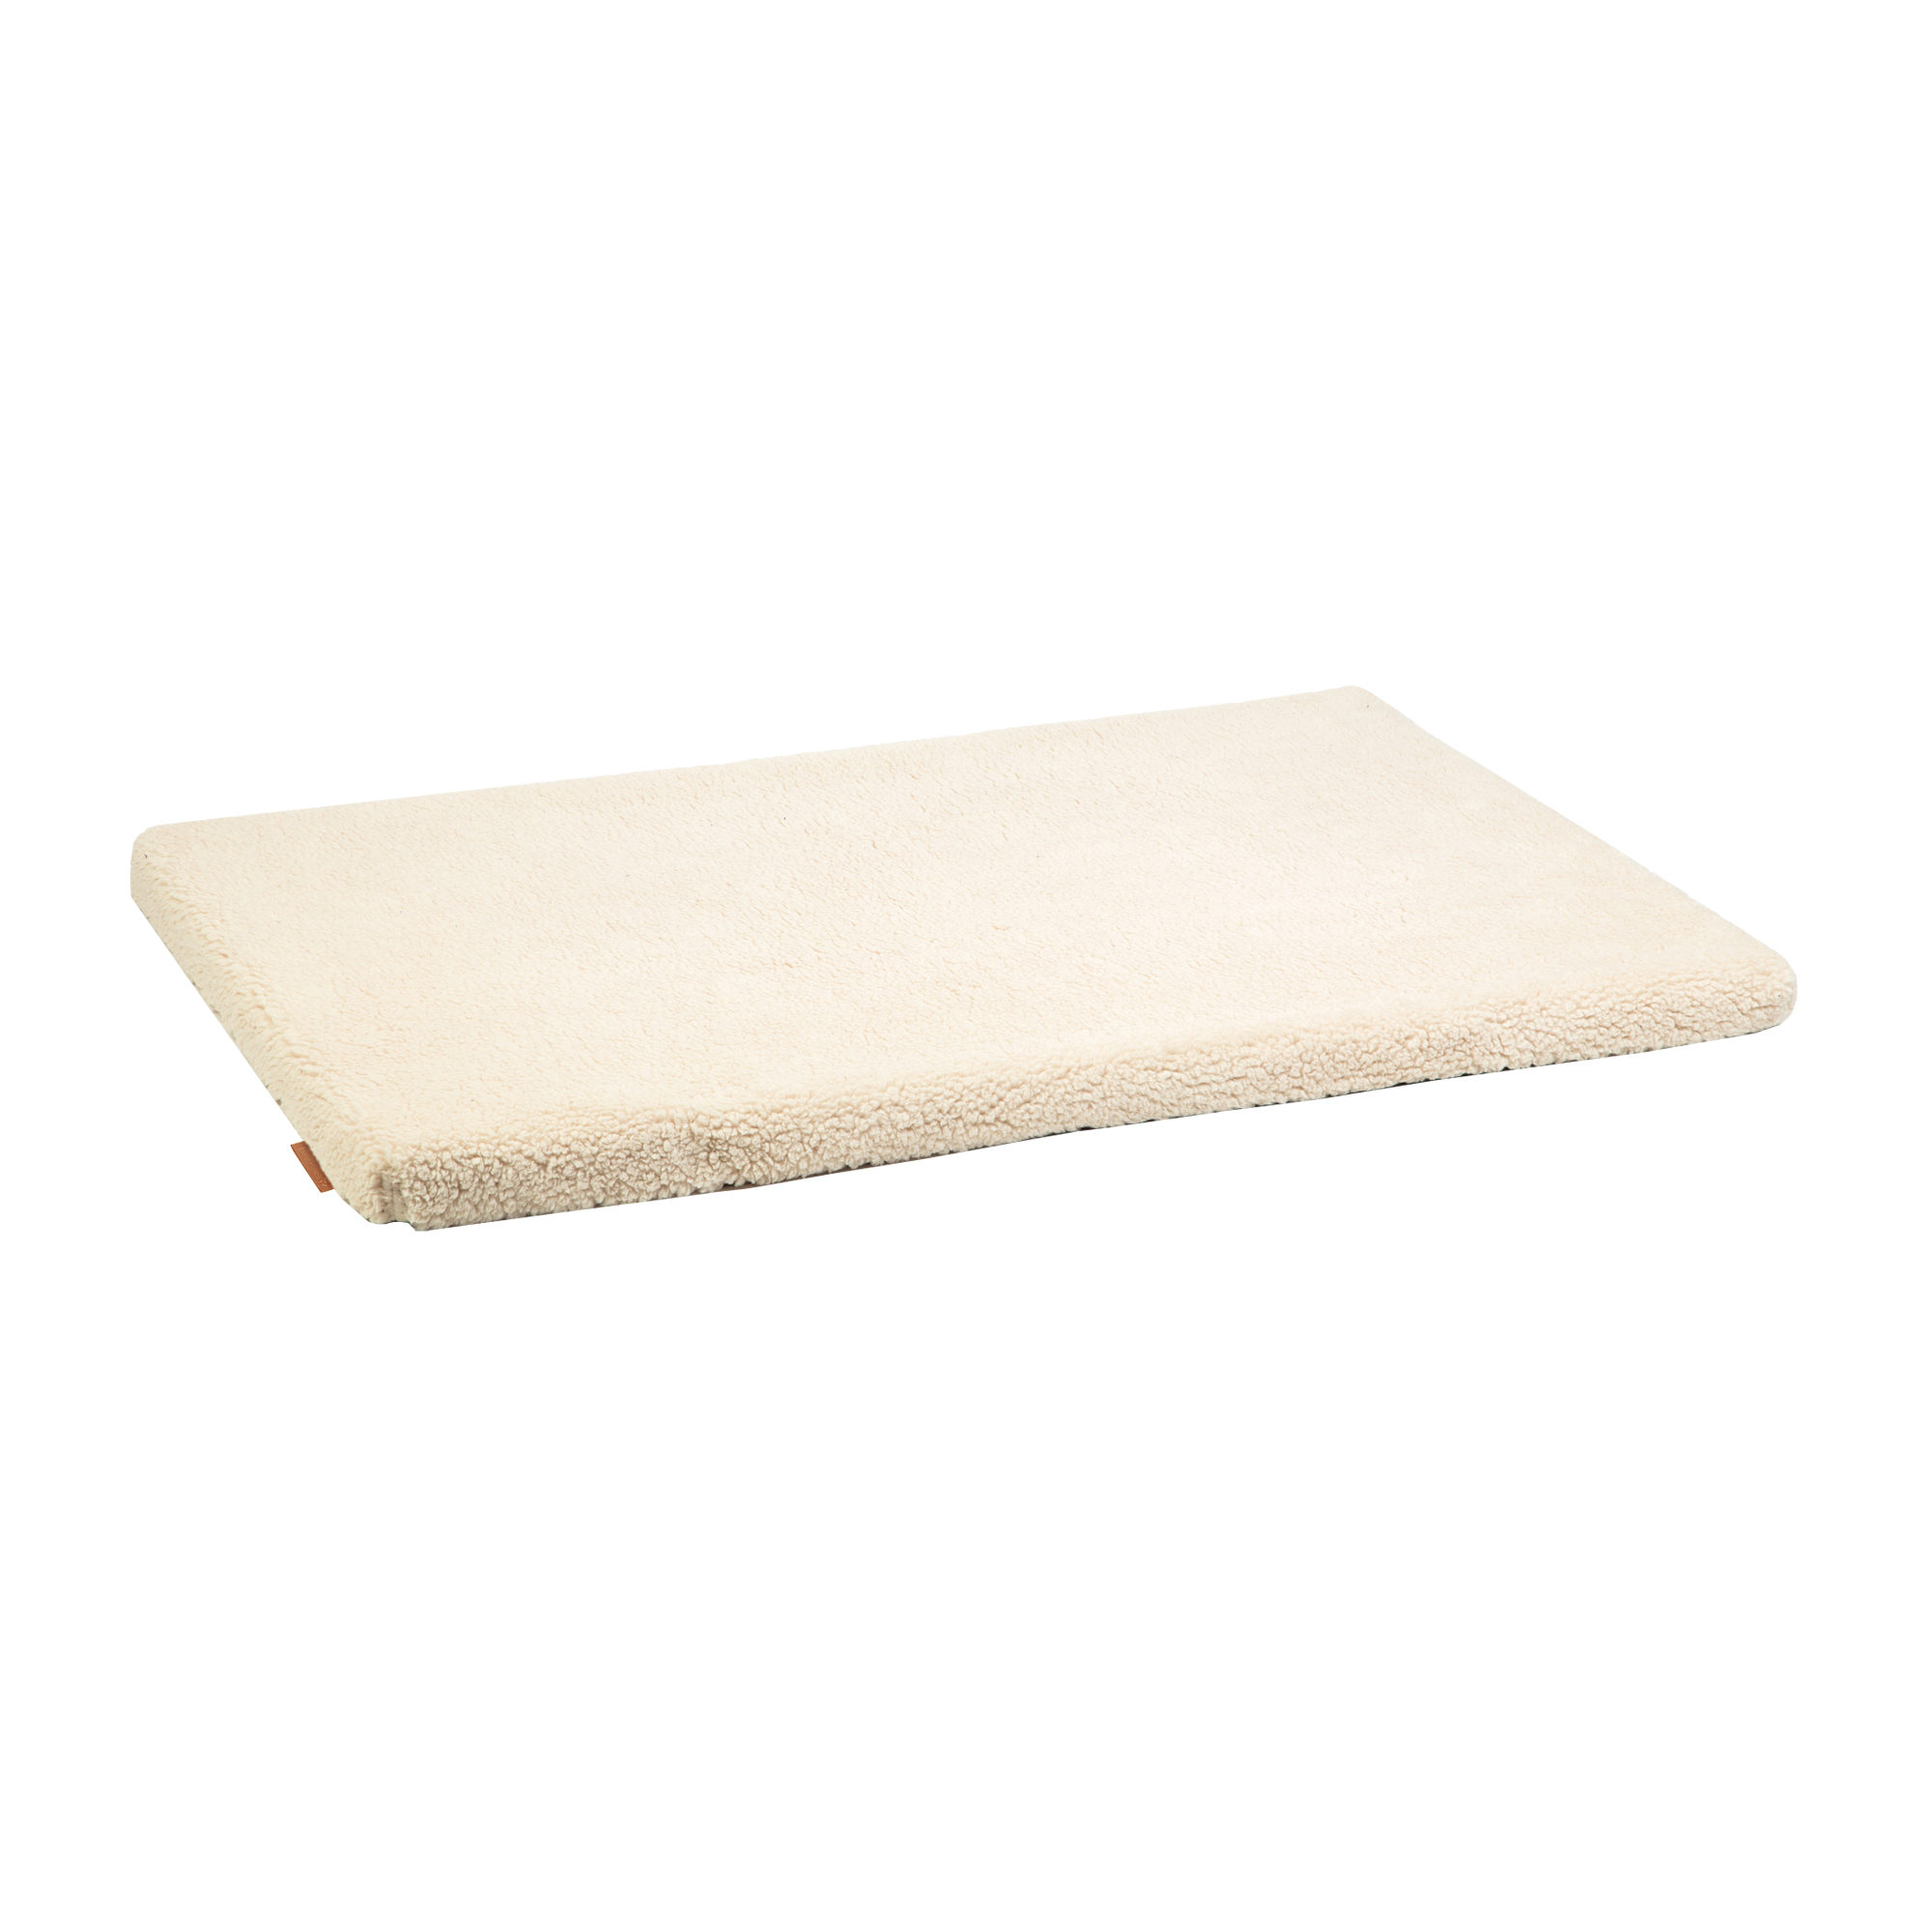 Beeztees - Coussin pour cage - Ito - Beige